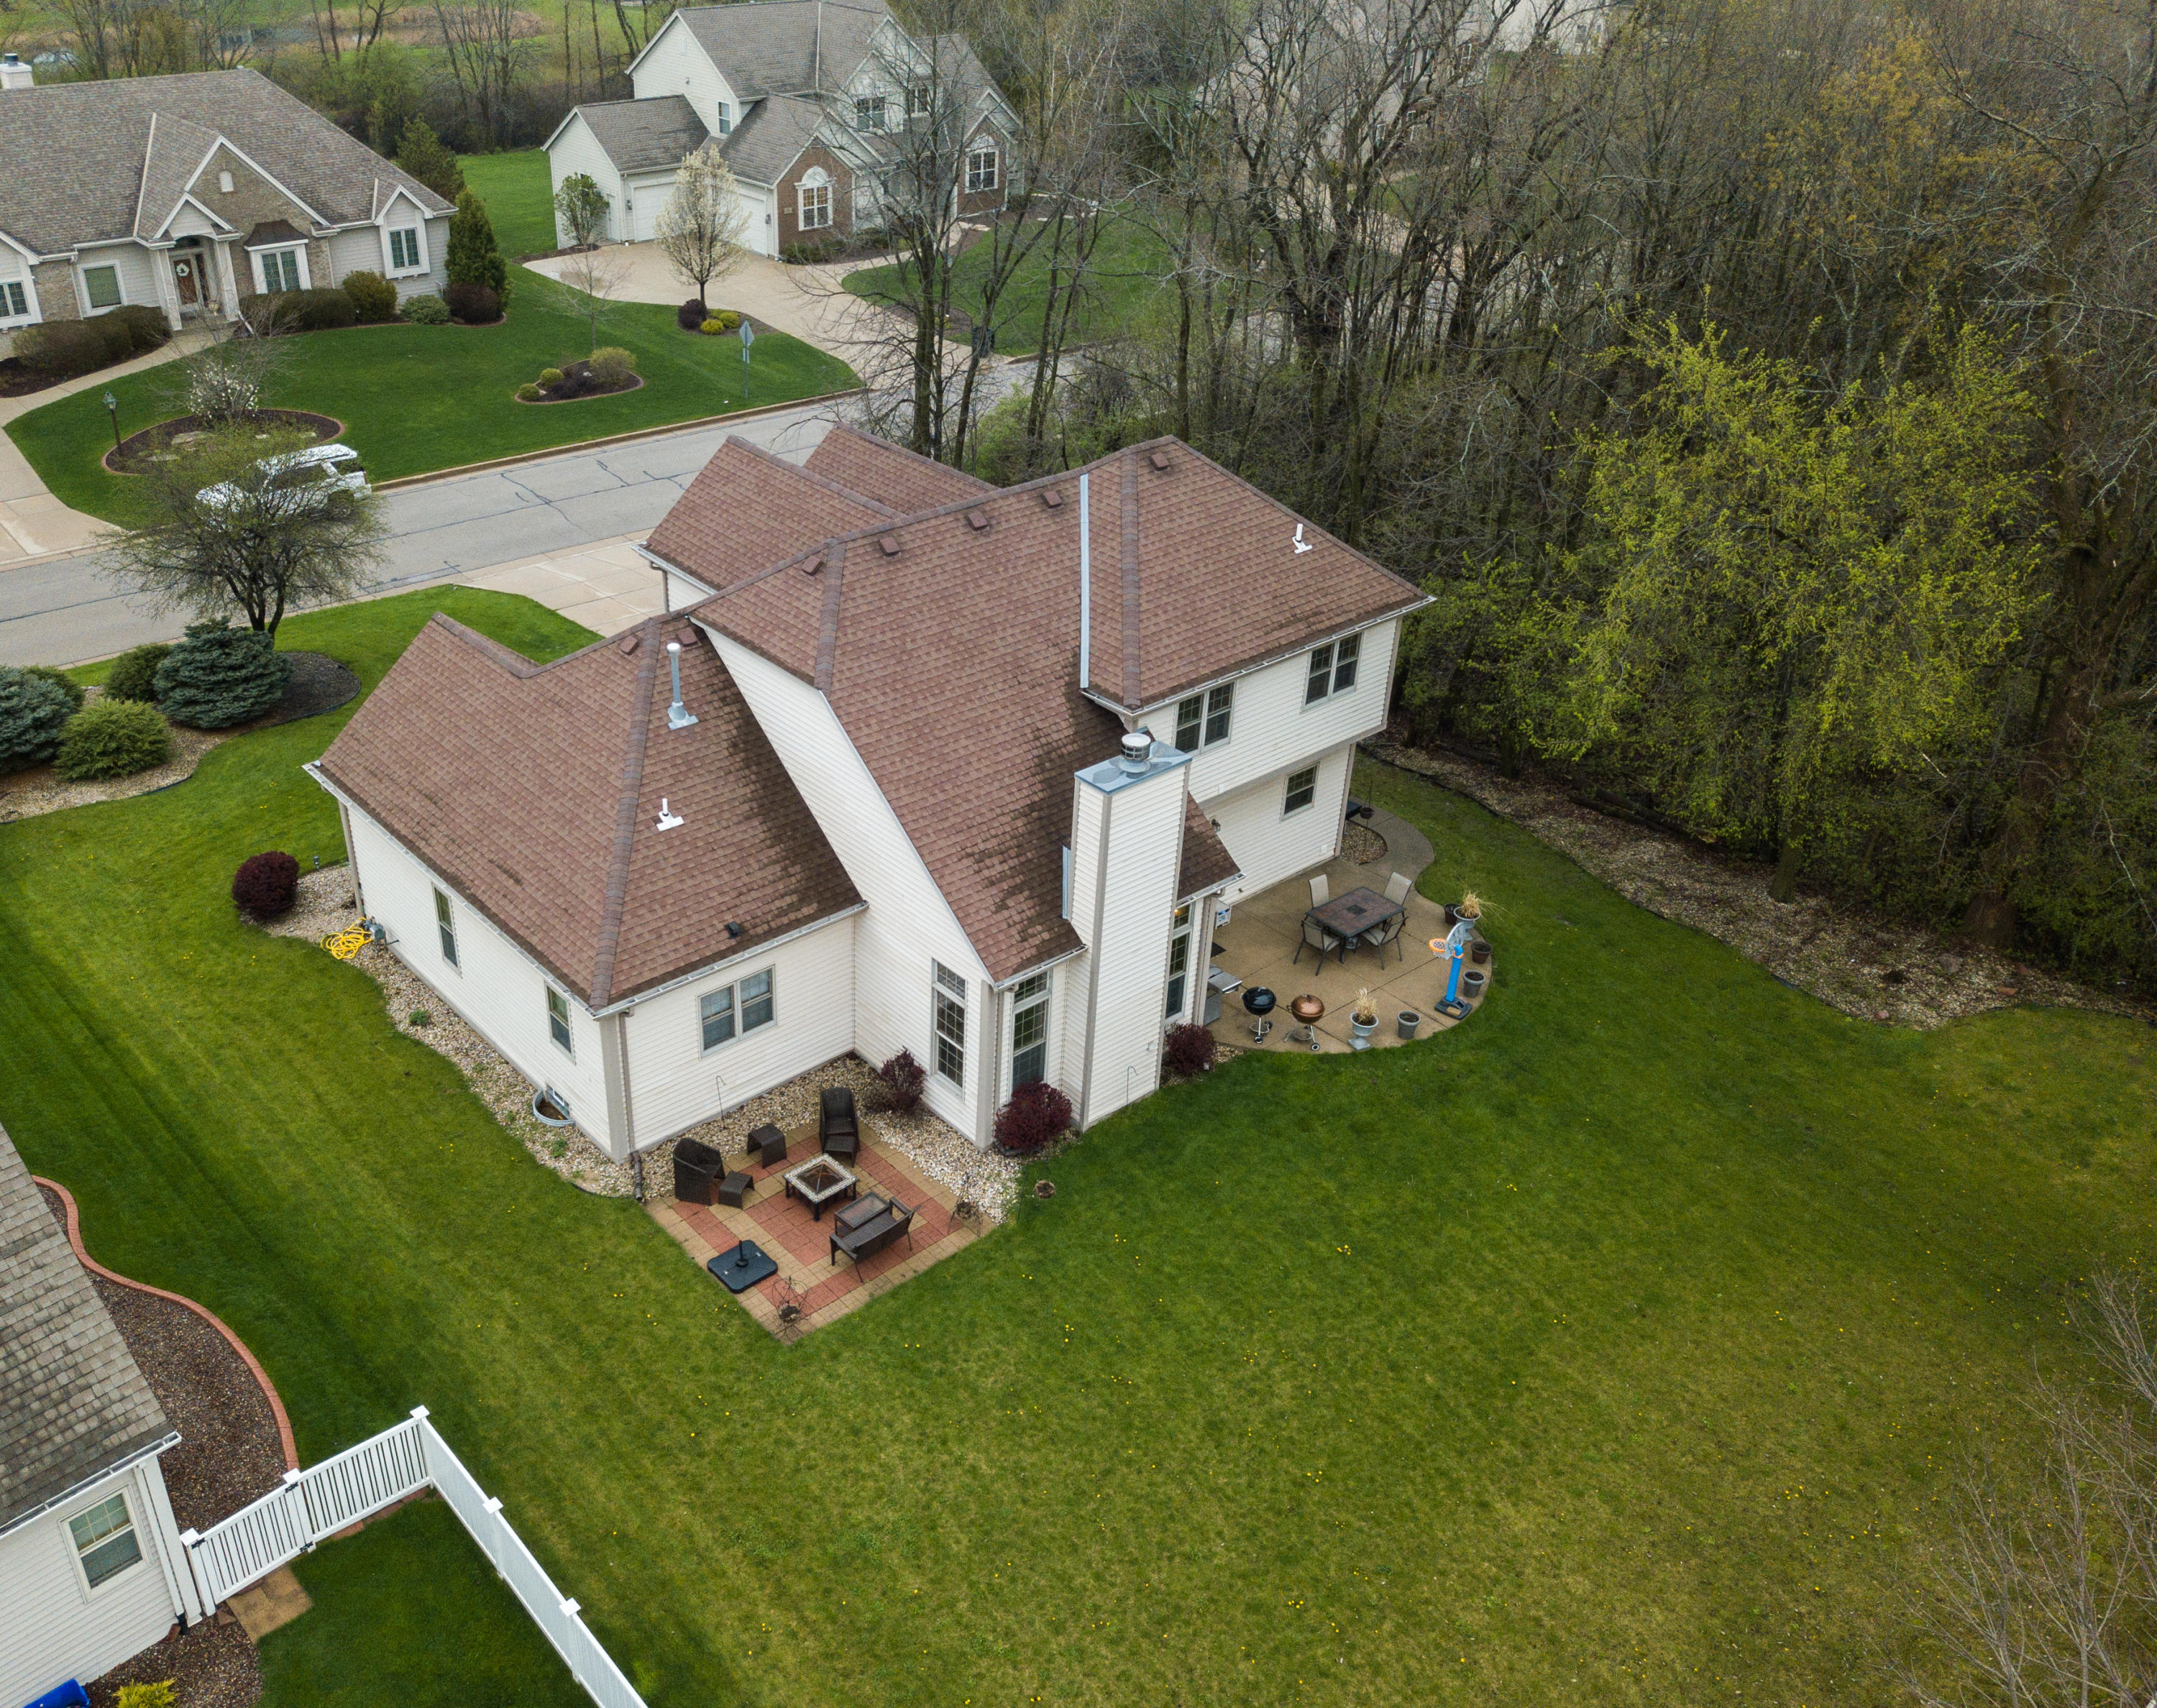 8094 Lakeview Dr, Franklin, Wisconsin 53132, 3 Bedrooms Bedrooms, 7 Rooms Rooms,2 BathroomsBathrooms,Single-Family,For Sale,Lakeview Dr,1643544